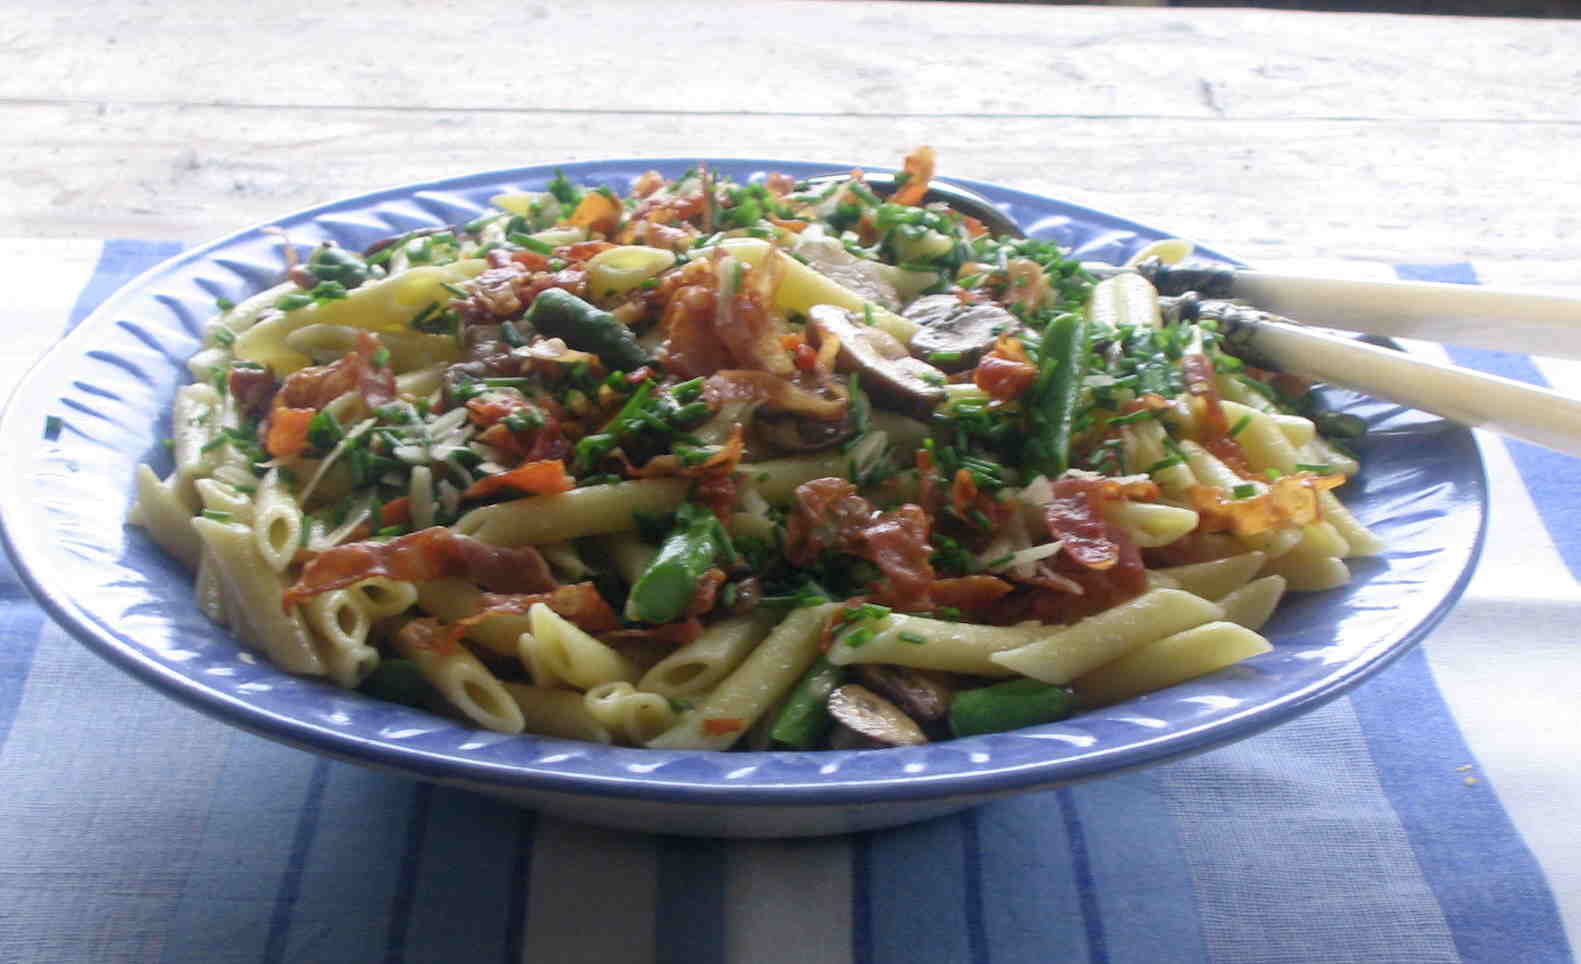 ... oil prosciutto penne with asparagus and penne with asparagus and penne